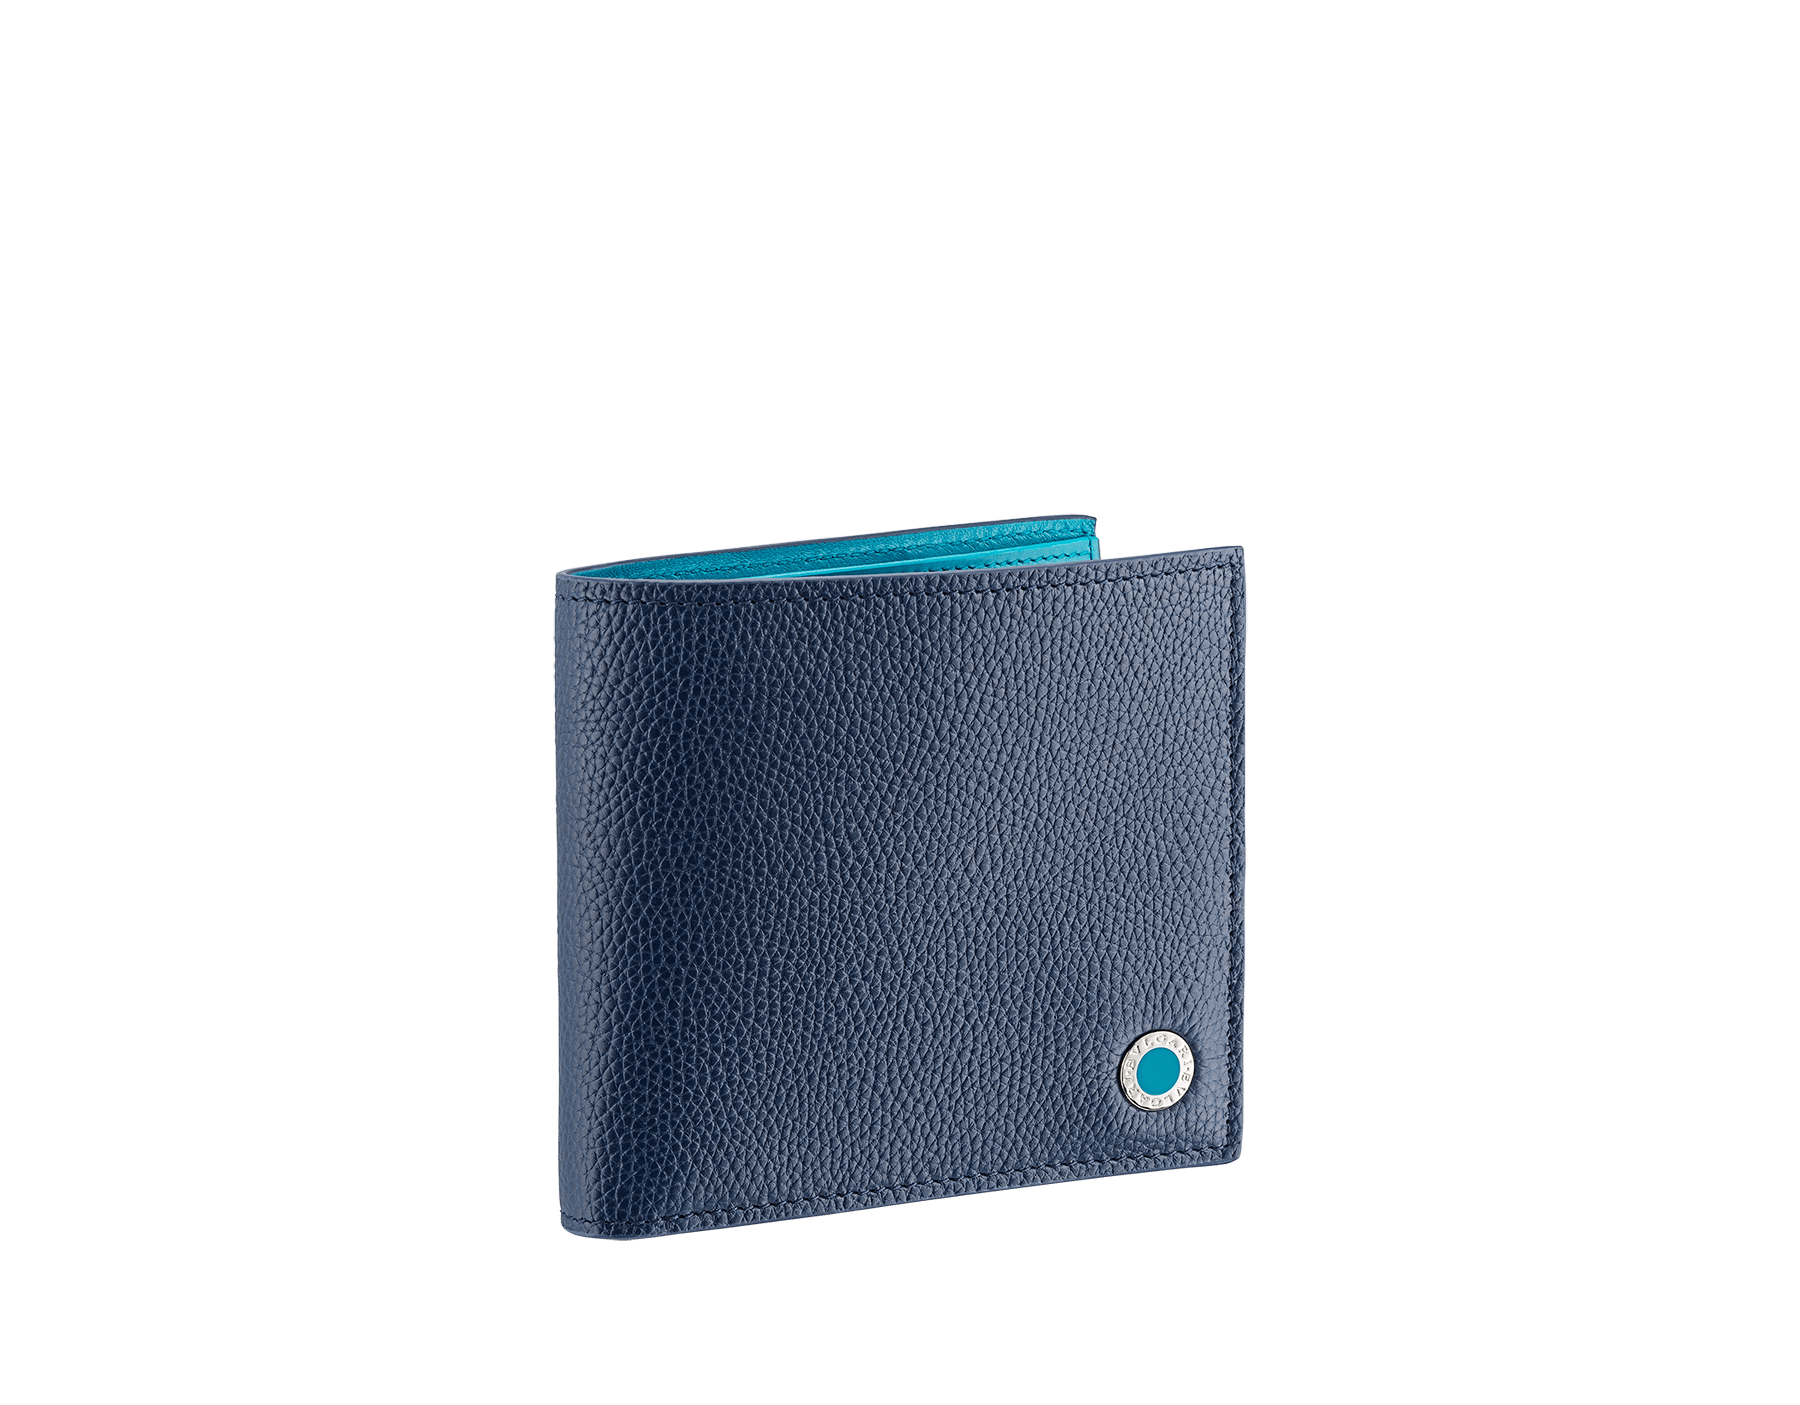 """""""BVLGARI BVLGARI"""" compact wallet in mimetic jade soft full grain calf leather and fire amber calf leather. Iconic logo decoration in palladium plated brass coloured in fire amber enamel. BBM-WLT-ITAL-sgcl image 1"""